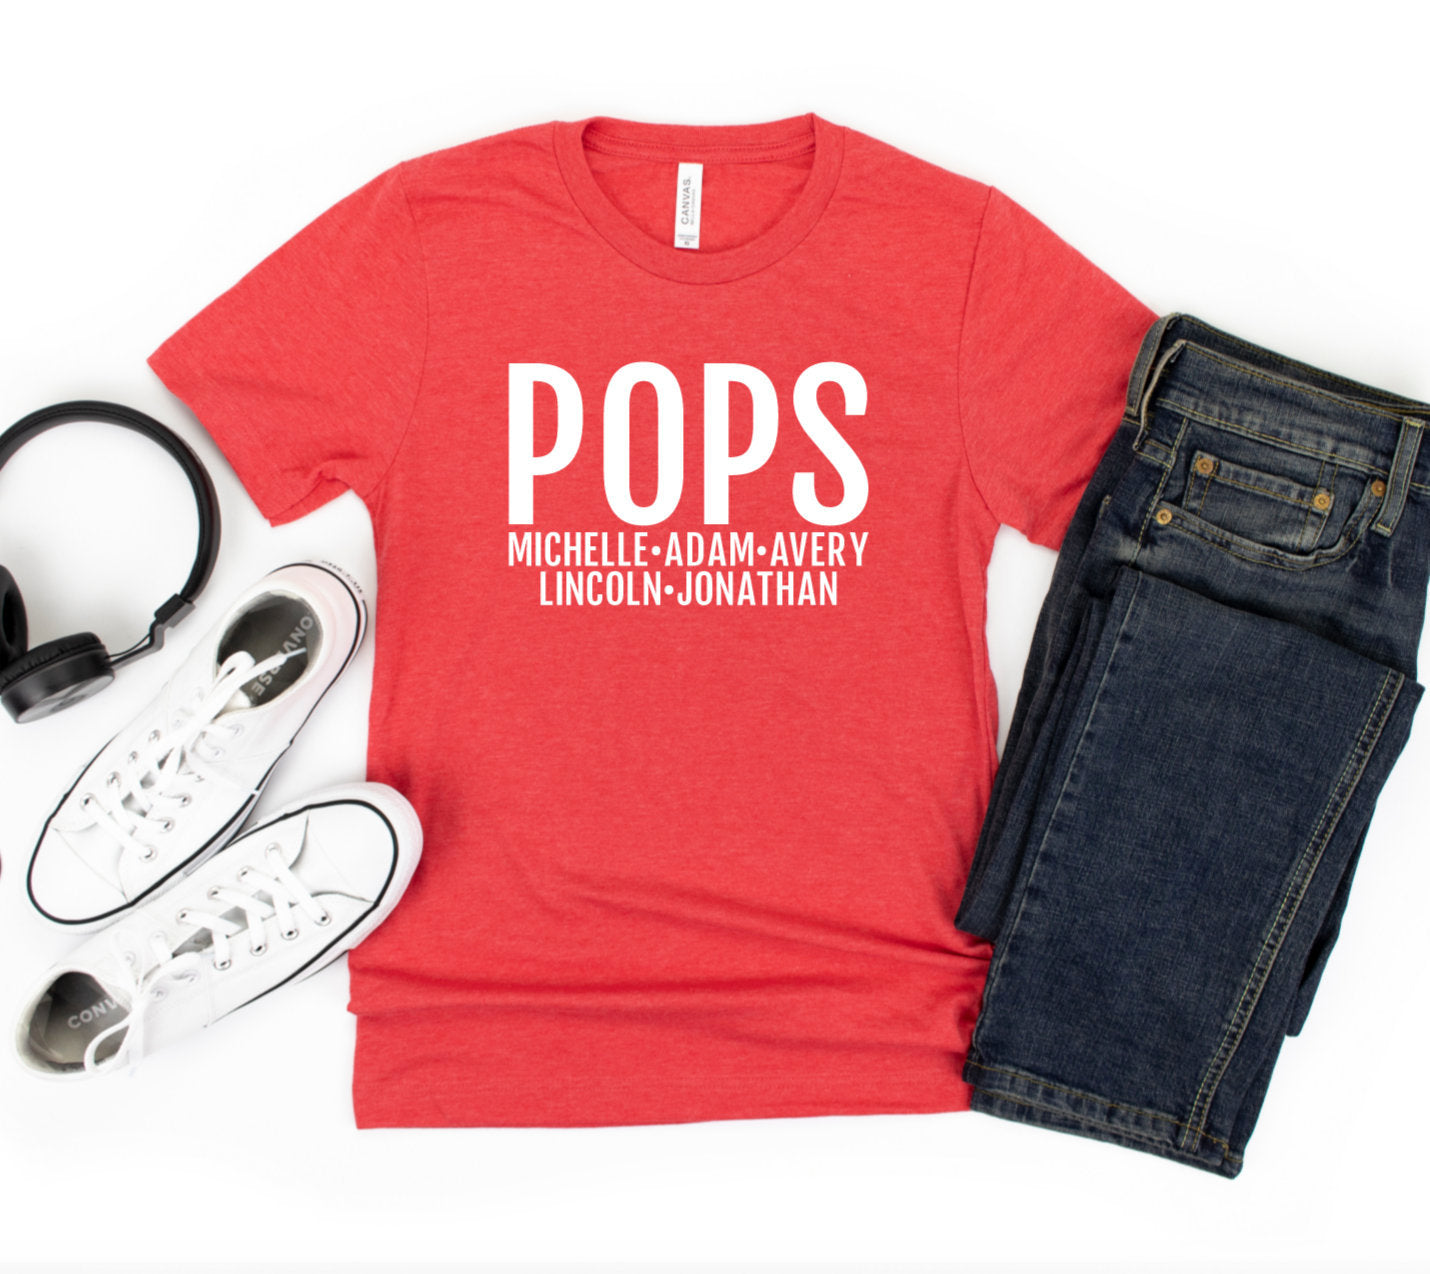 Personalized Pops T-shirt With Grandkids Names - Pops Shirt - Gift For Pops - Father's Day Gift Idea - Pops T-shirt